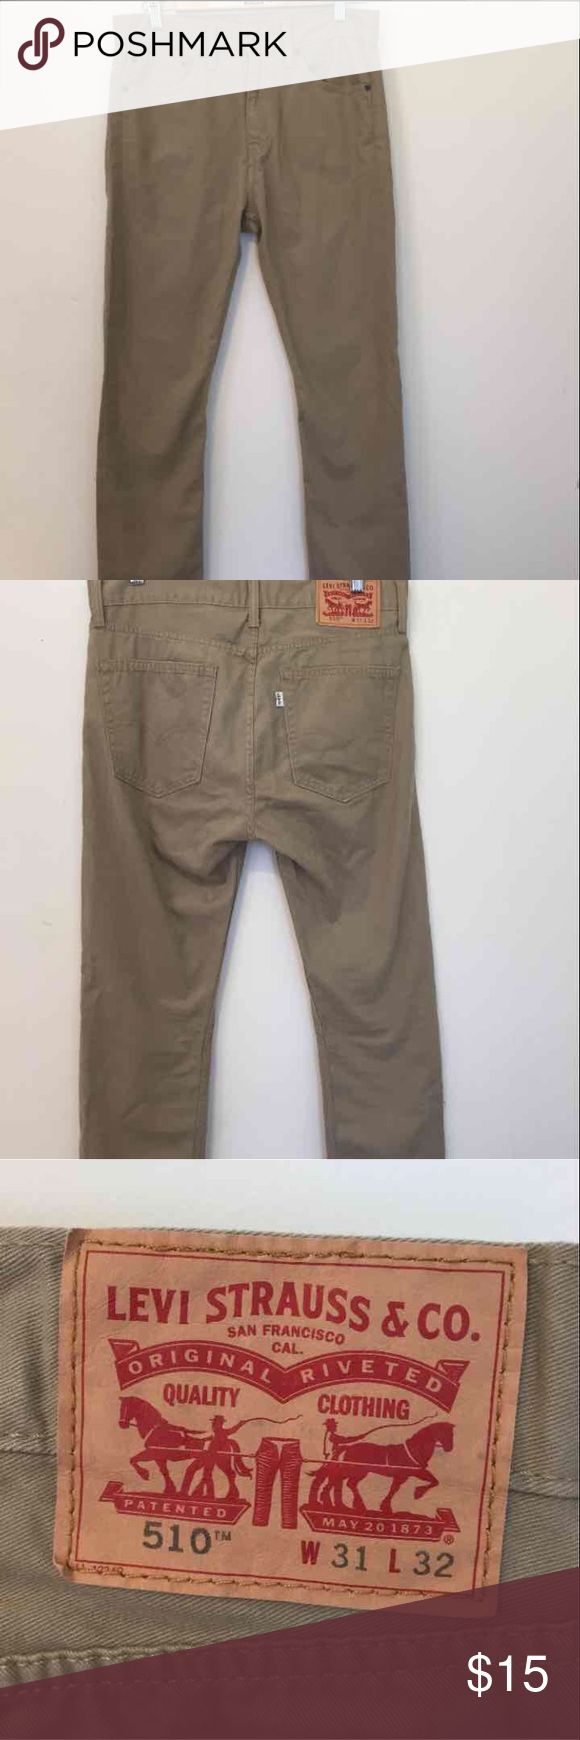 Levi's 510 British khaki boy skinny jean Size: W31 L32. Very nice pair of khakis. Only worn once. Levi's Pants Chinos & Khakis